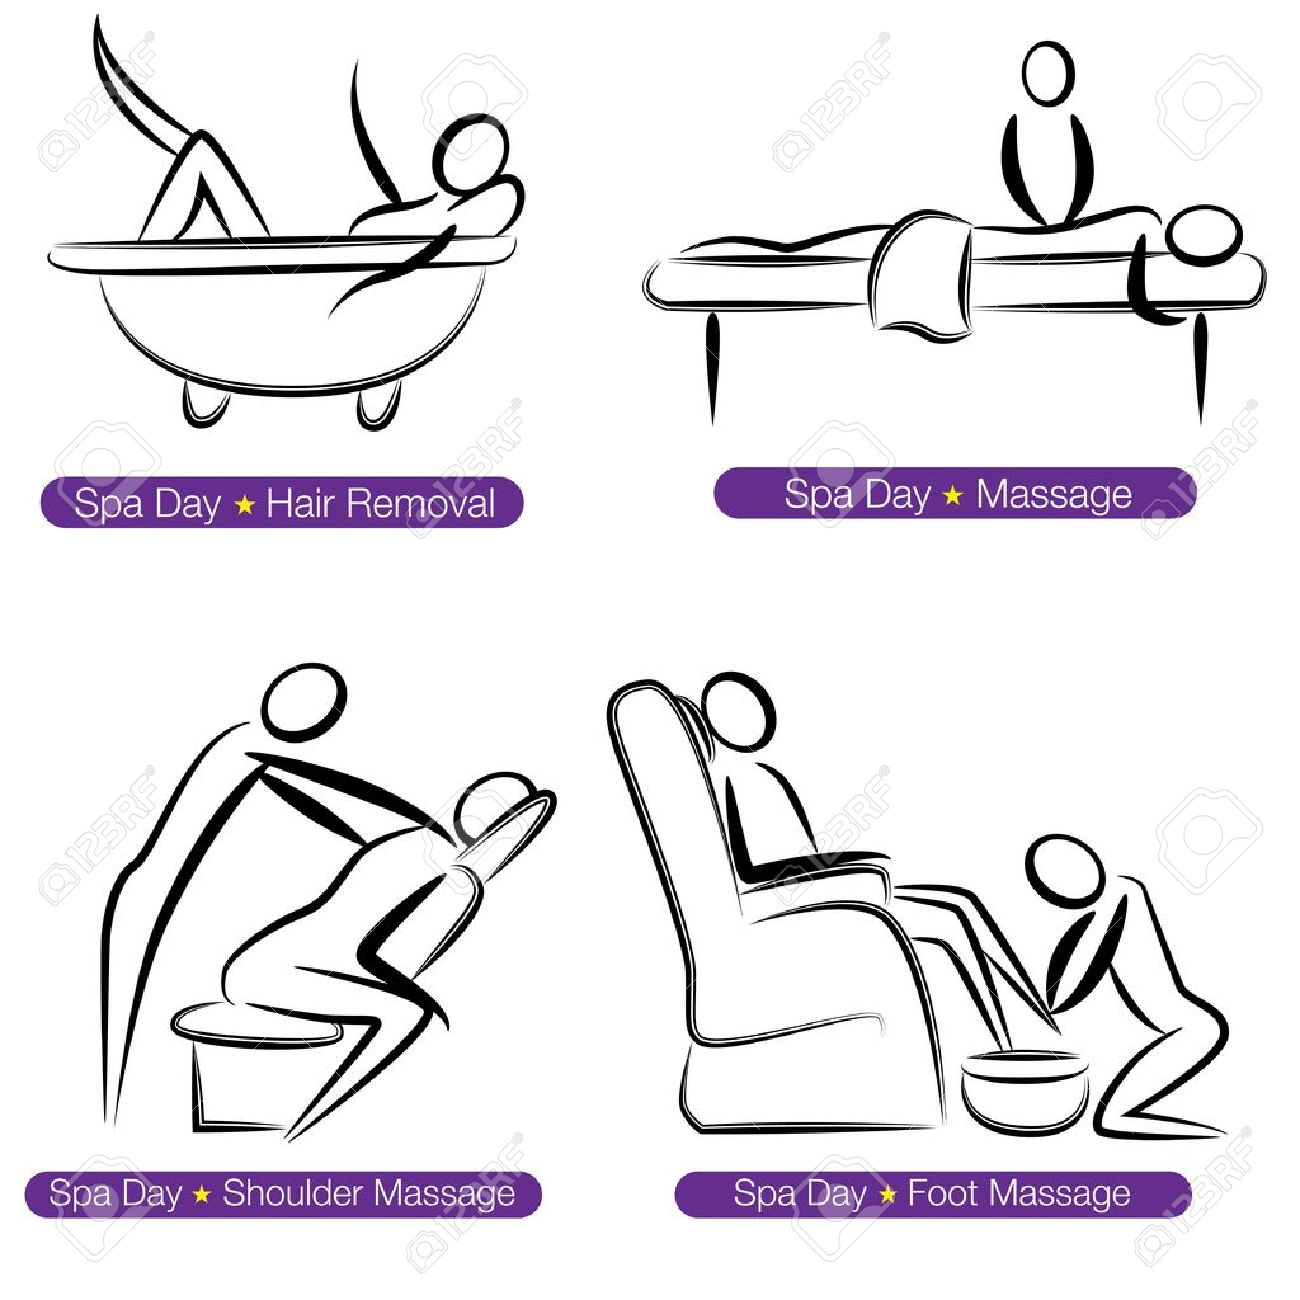 Cartoon physical therapy - Physical Therapy Cartoon An Image Of A Spa Day People Set Illustration